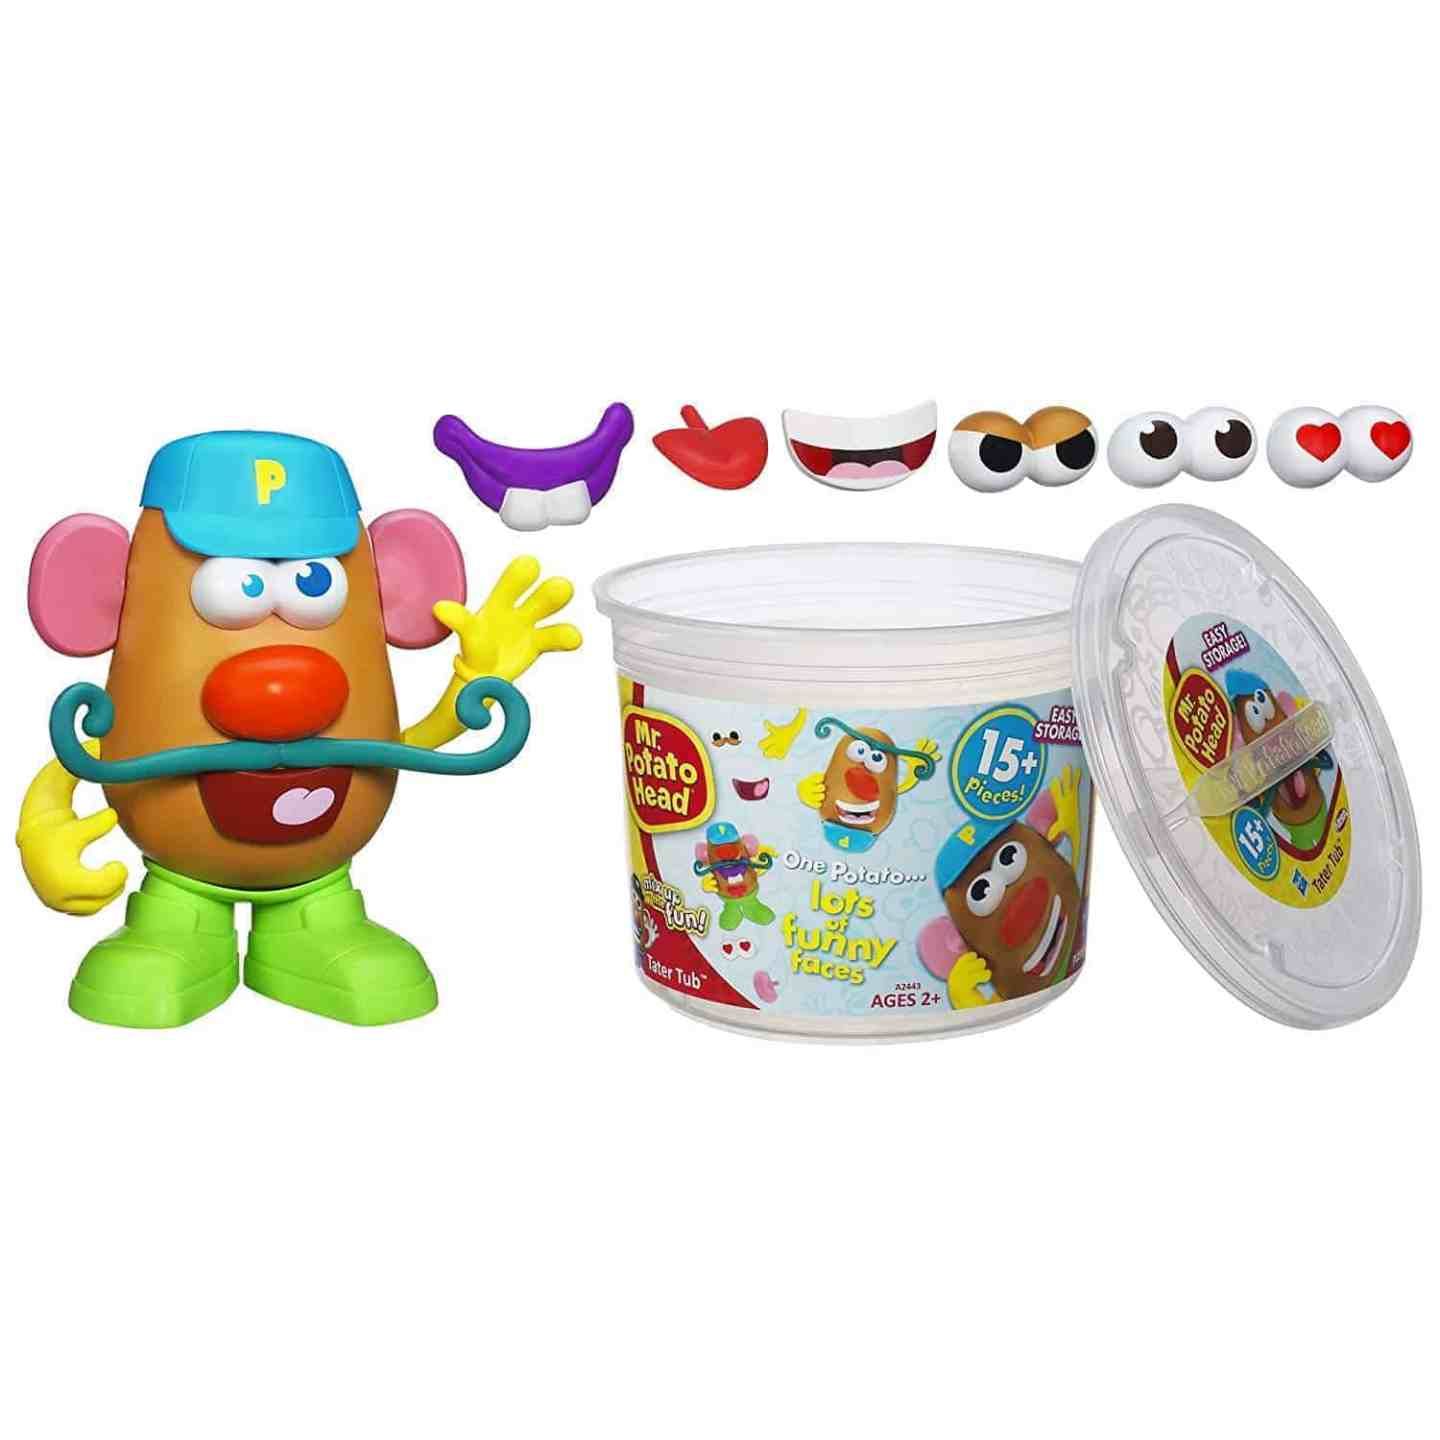 Mr. Potato Head Set